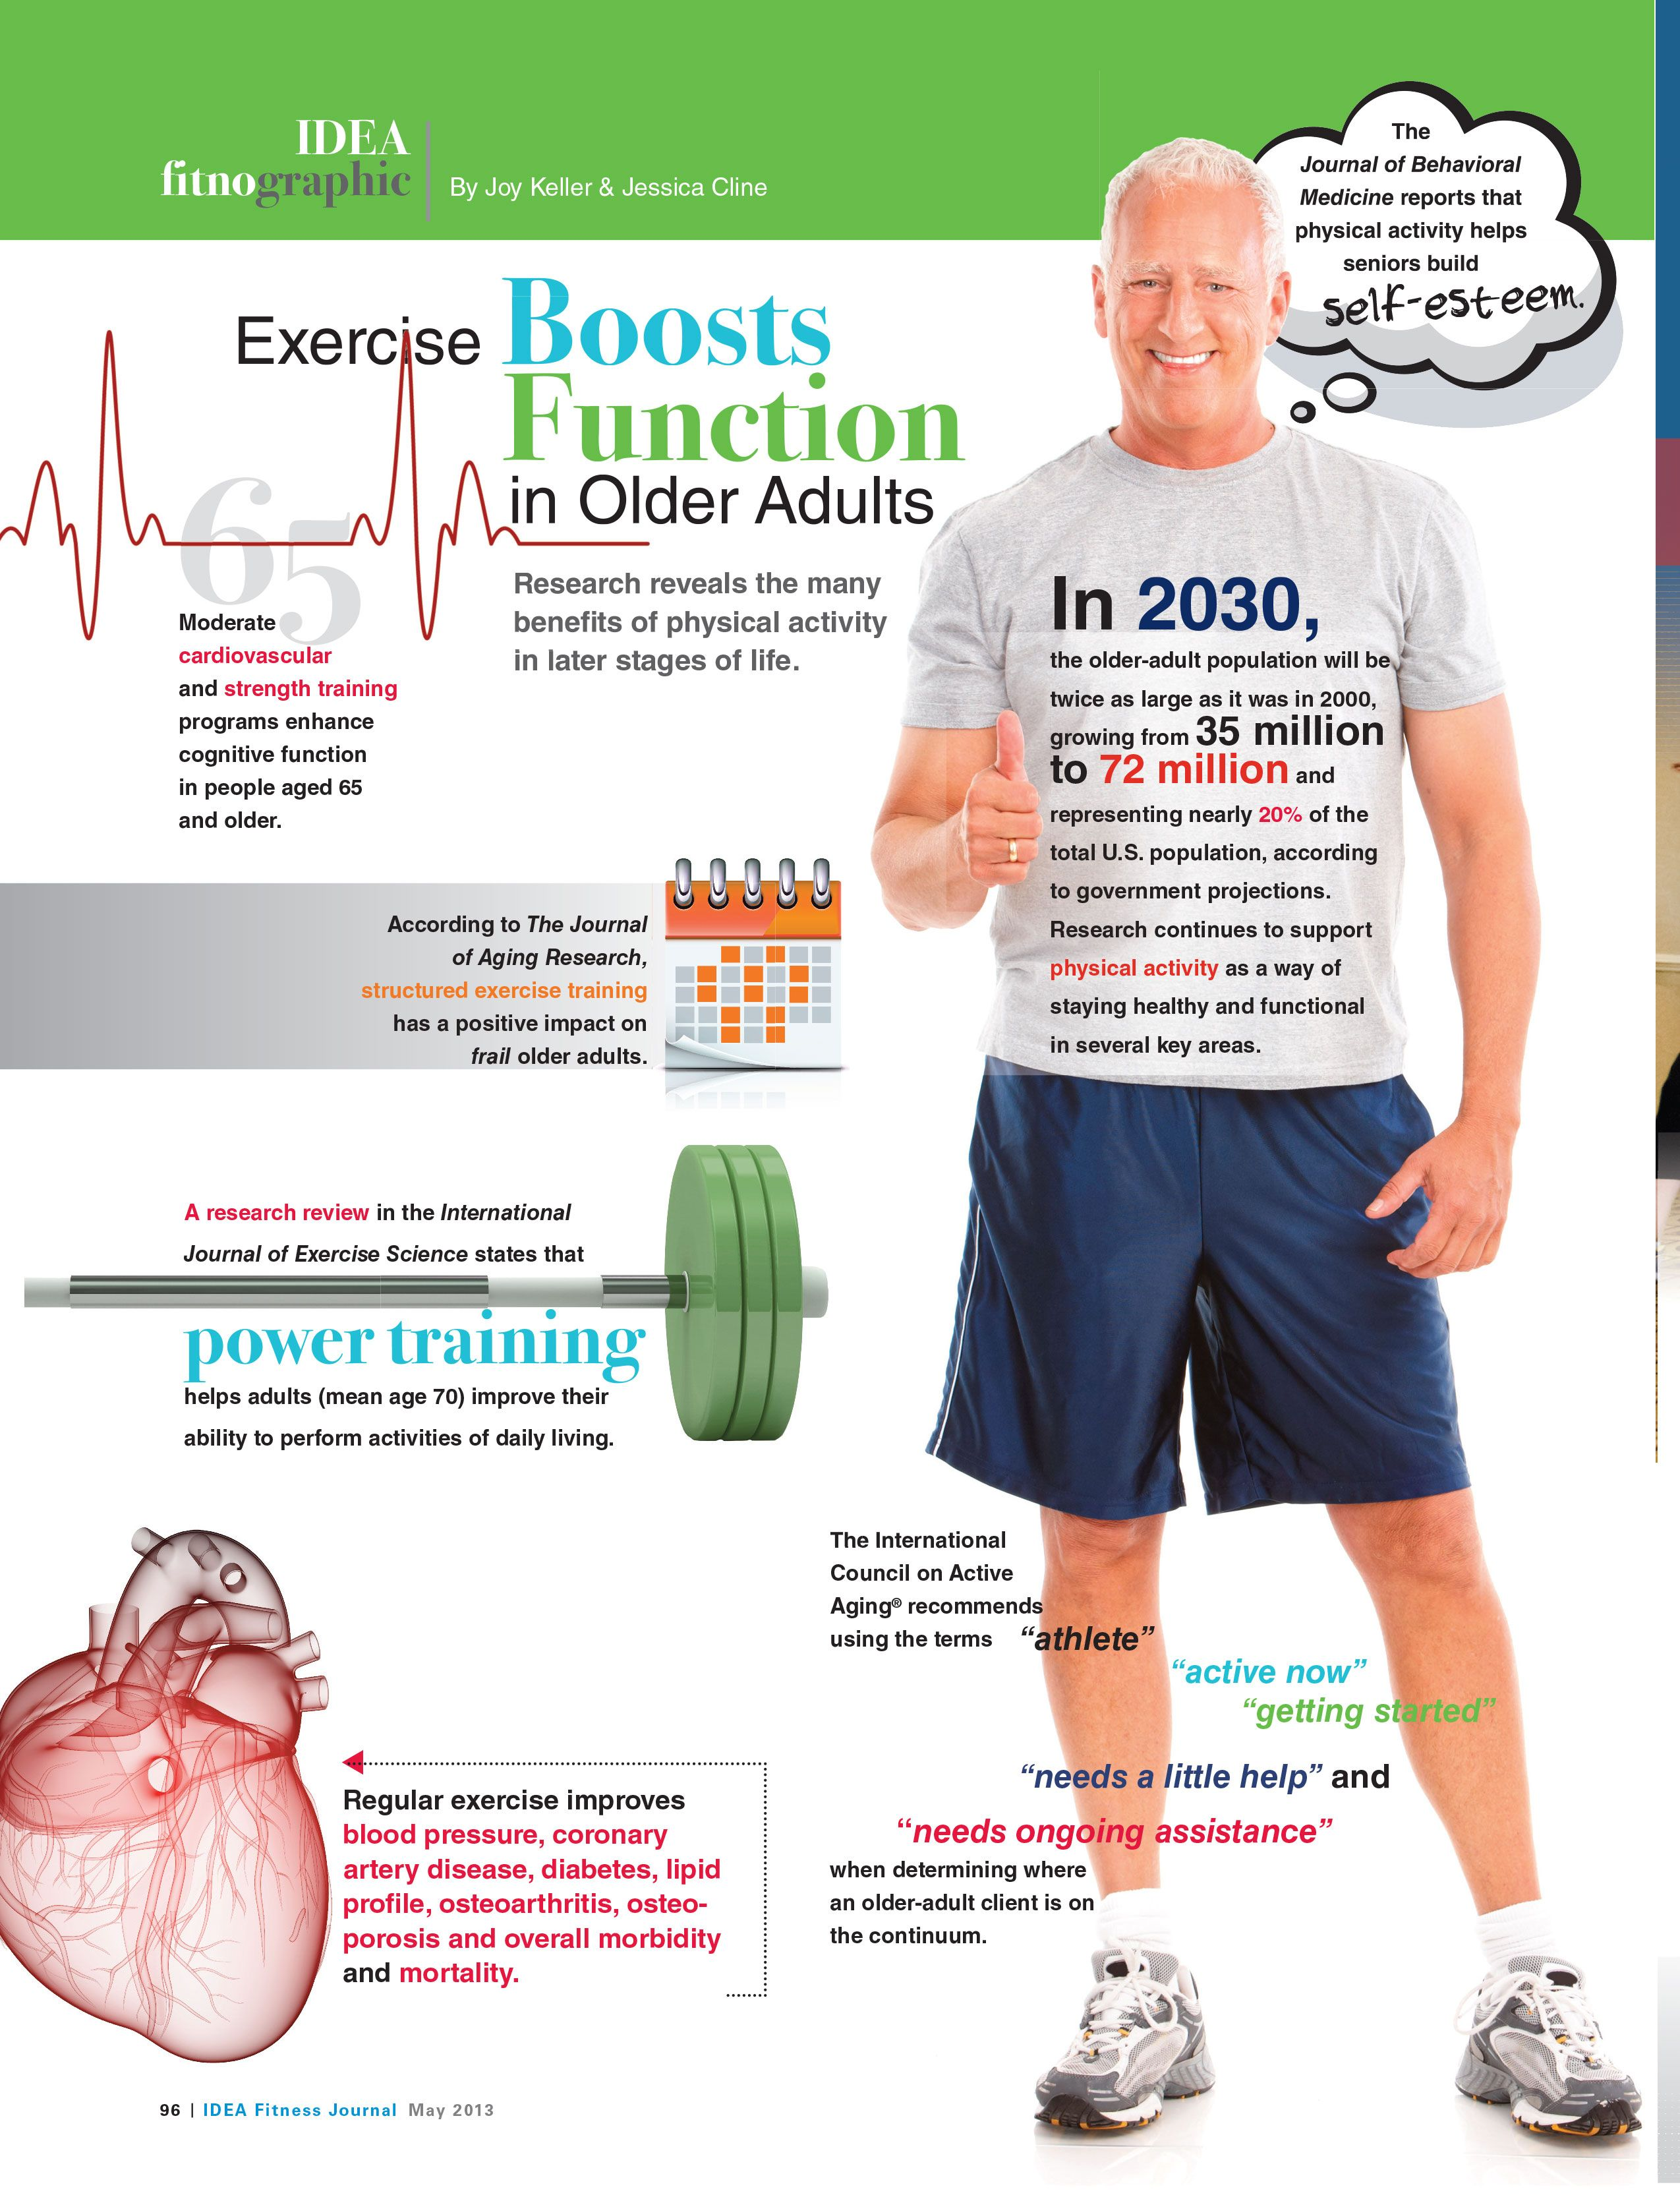 excercise boosts function in older adults  looking at cardiovascular  power and strength